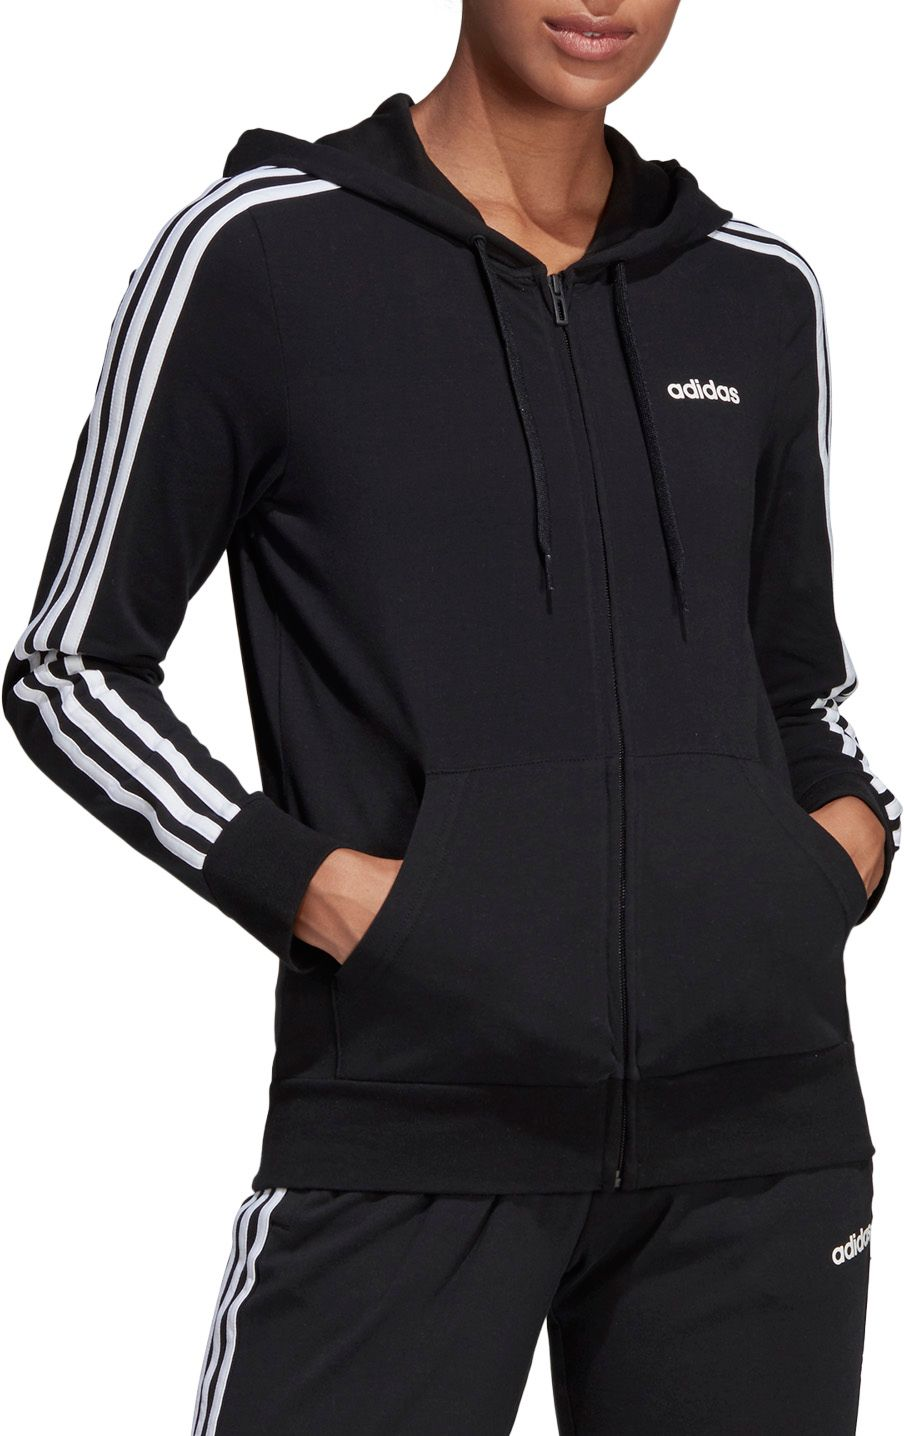 Variety Adidas Boy/'s French Terry 3 Stripe Jacket